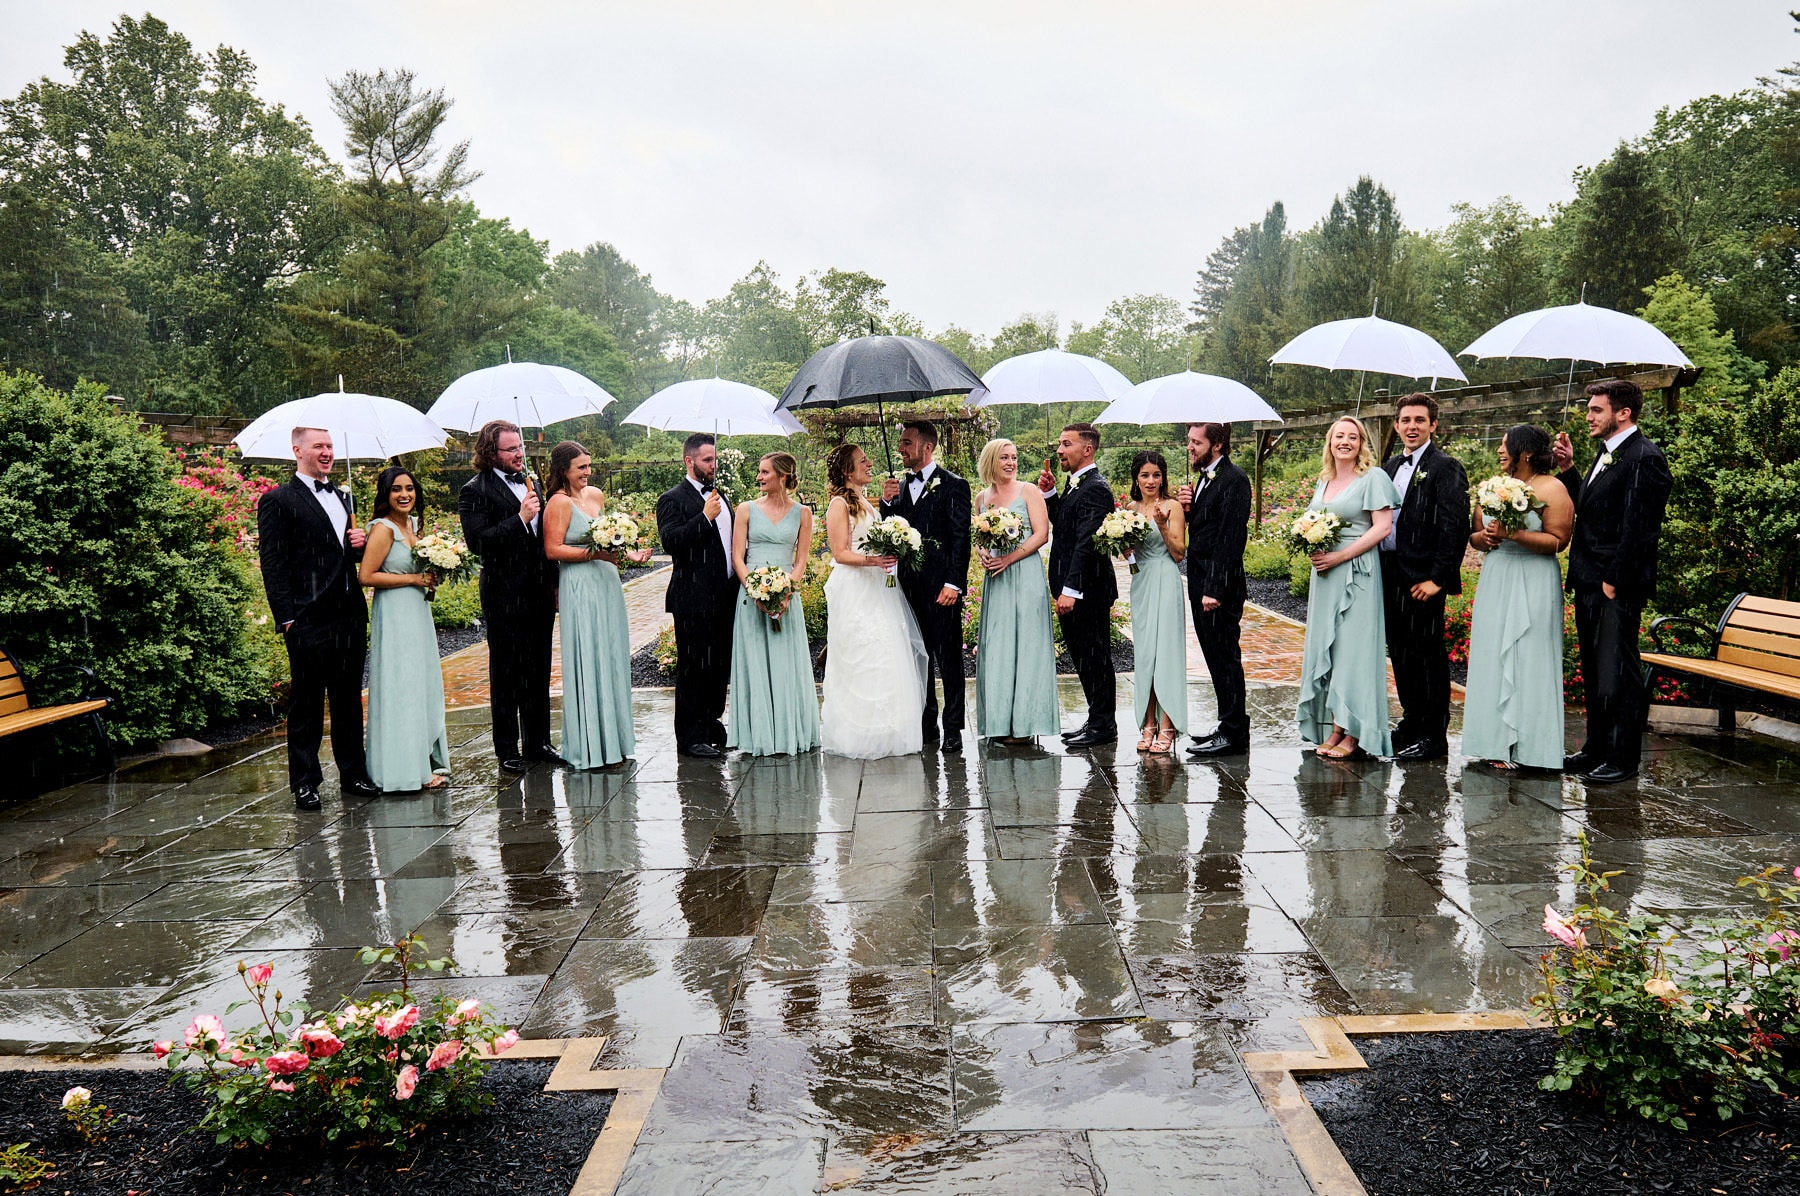 bridal party photo in the rain colonial park rose garden